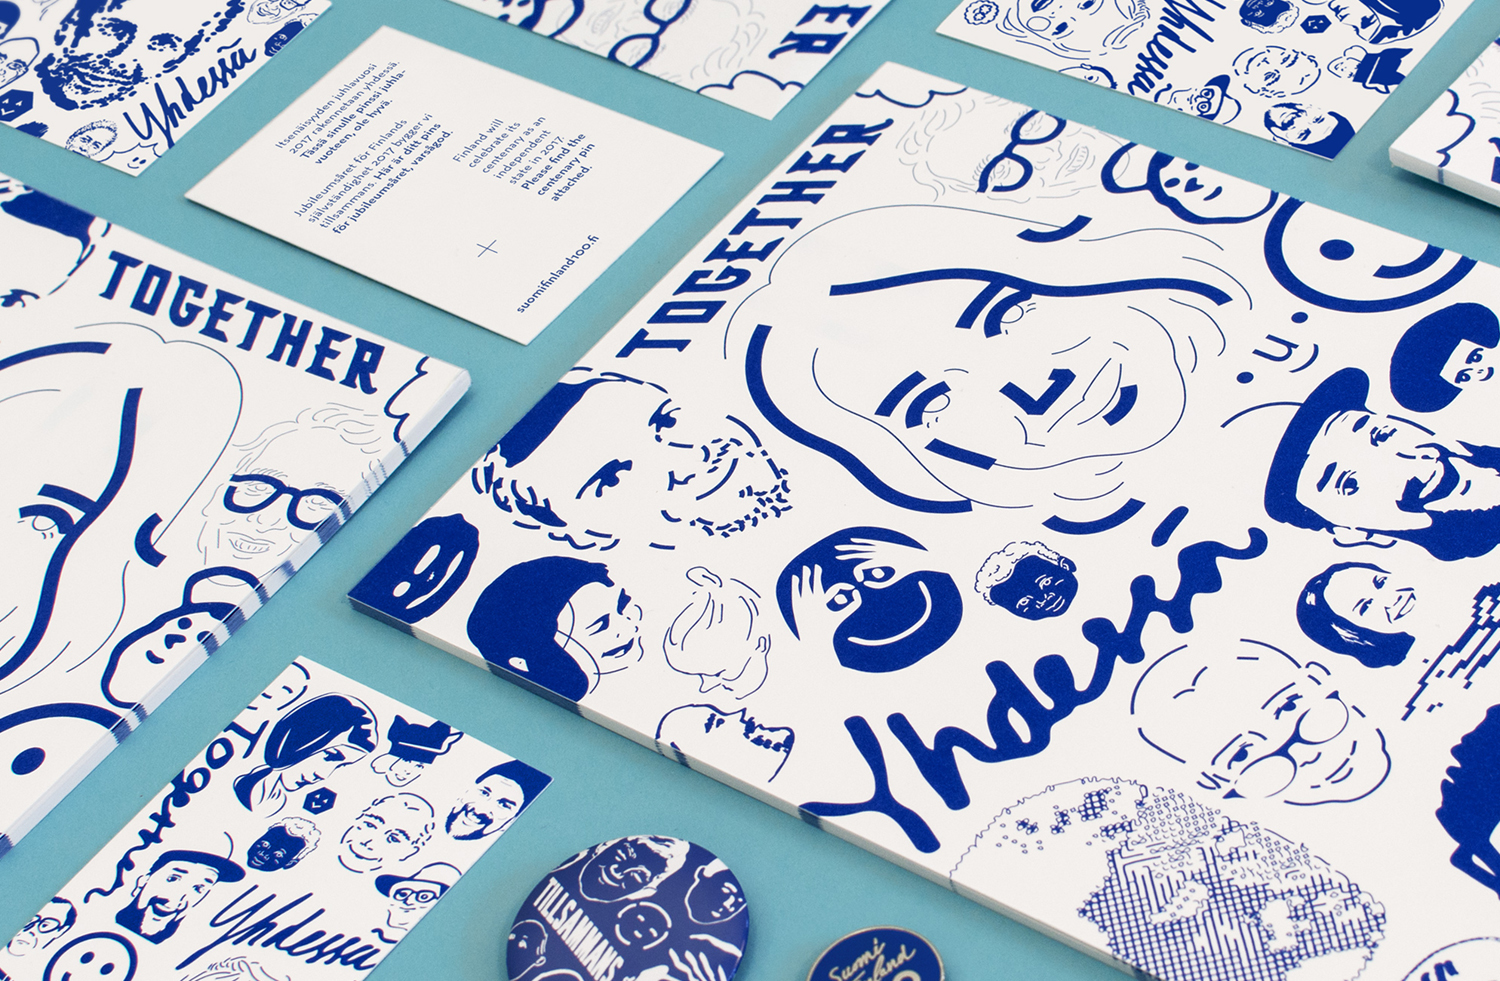 Brand identity, illustration and print by Kokoro & Moi for the celebration of Finland's centenary